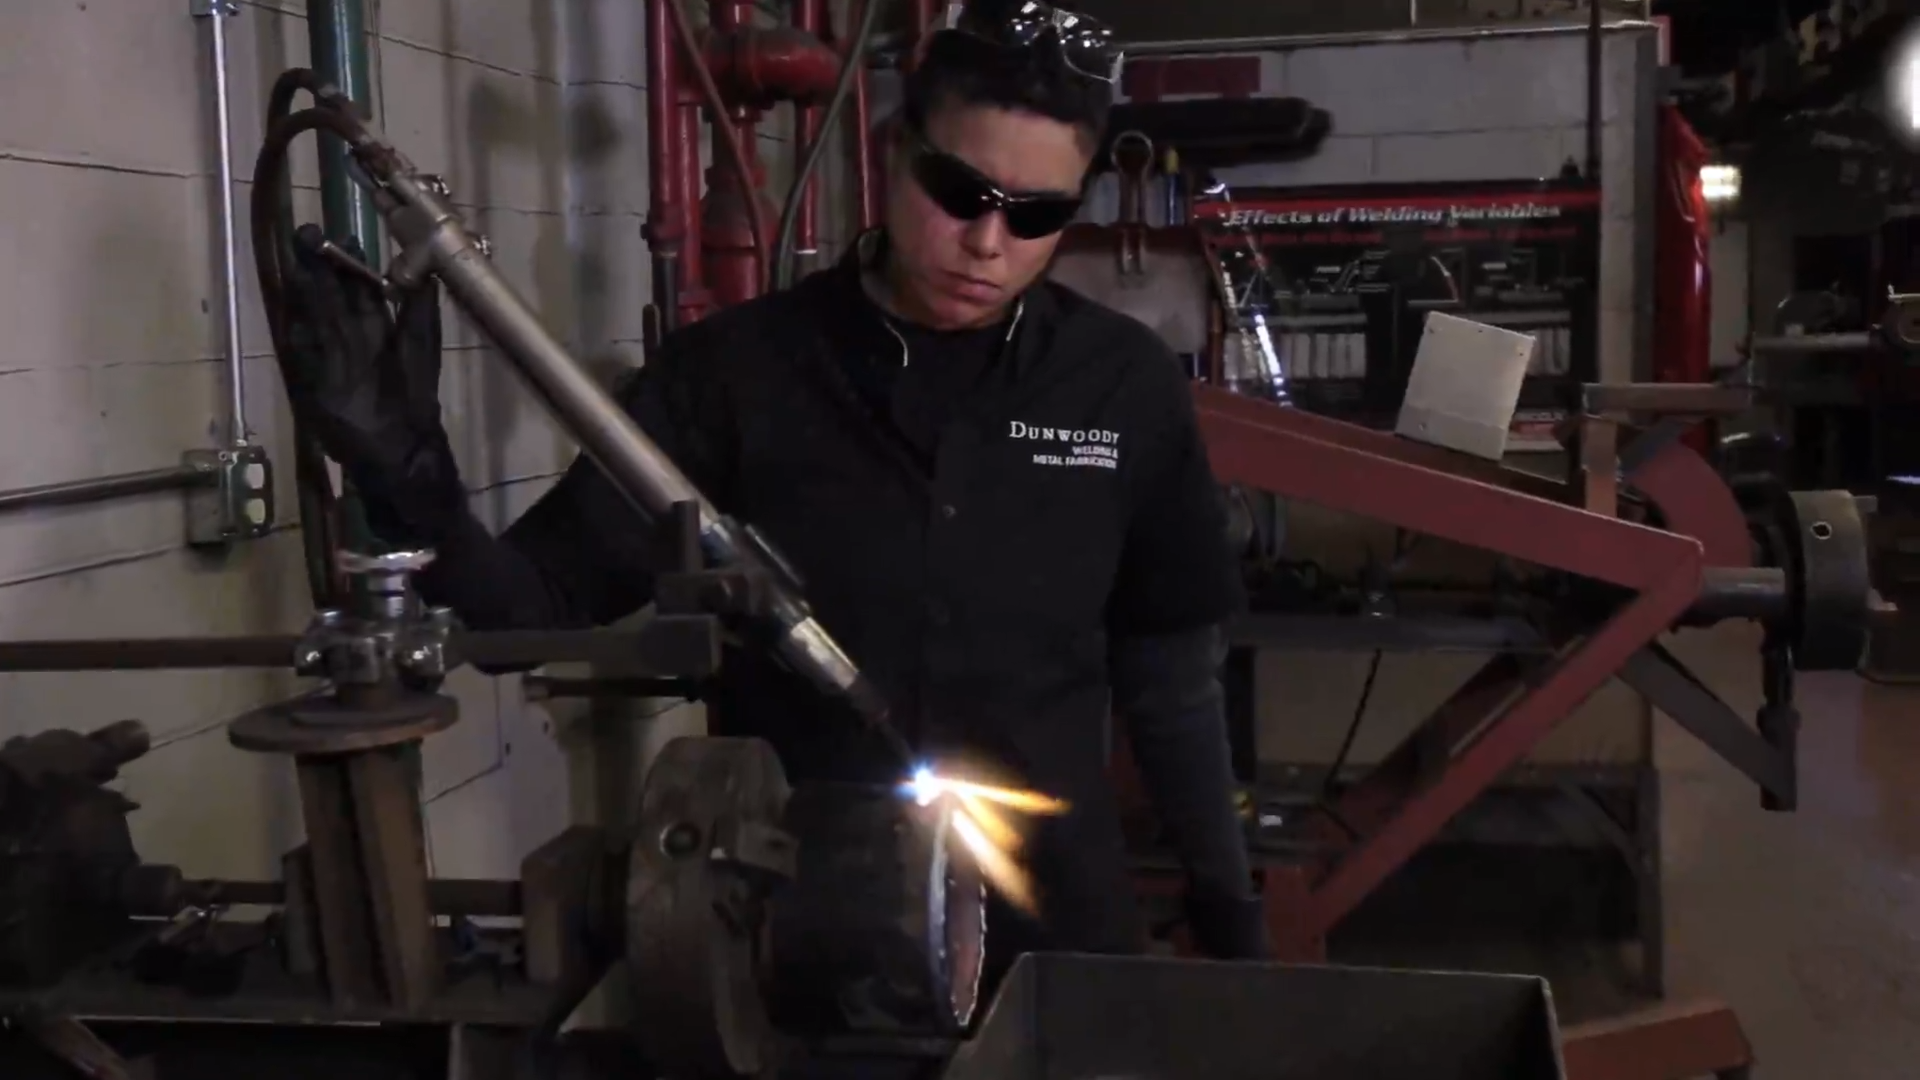 Denise Bailey - Welder / Instructor